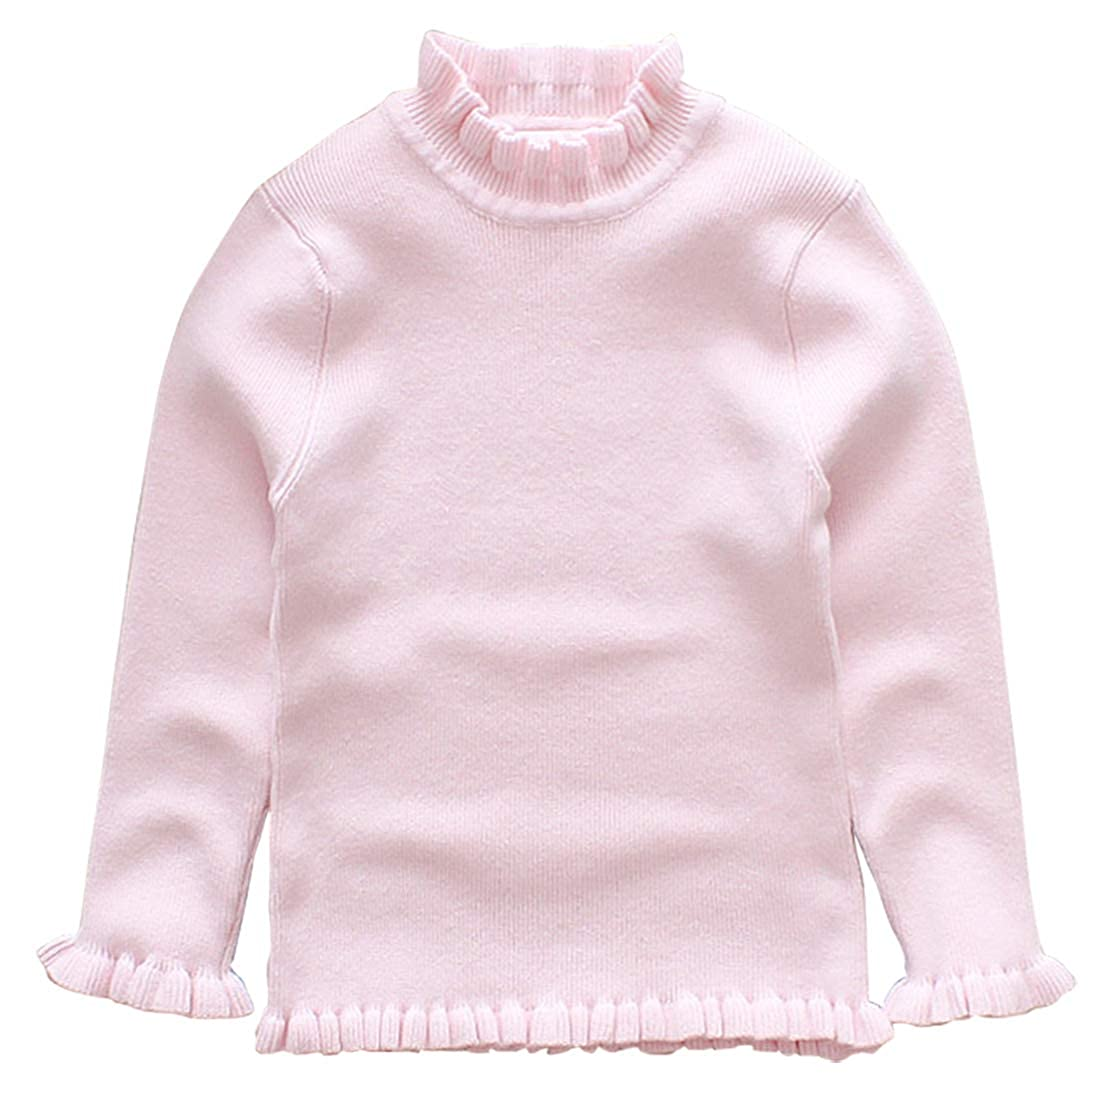 AIEOE Baby Girl Long Sleeve Pullover Sweater Turtleneck Warm Thick Knit Sweatshirt